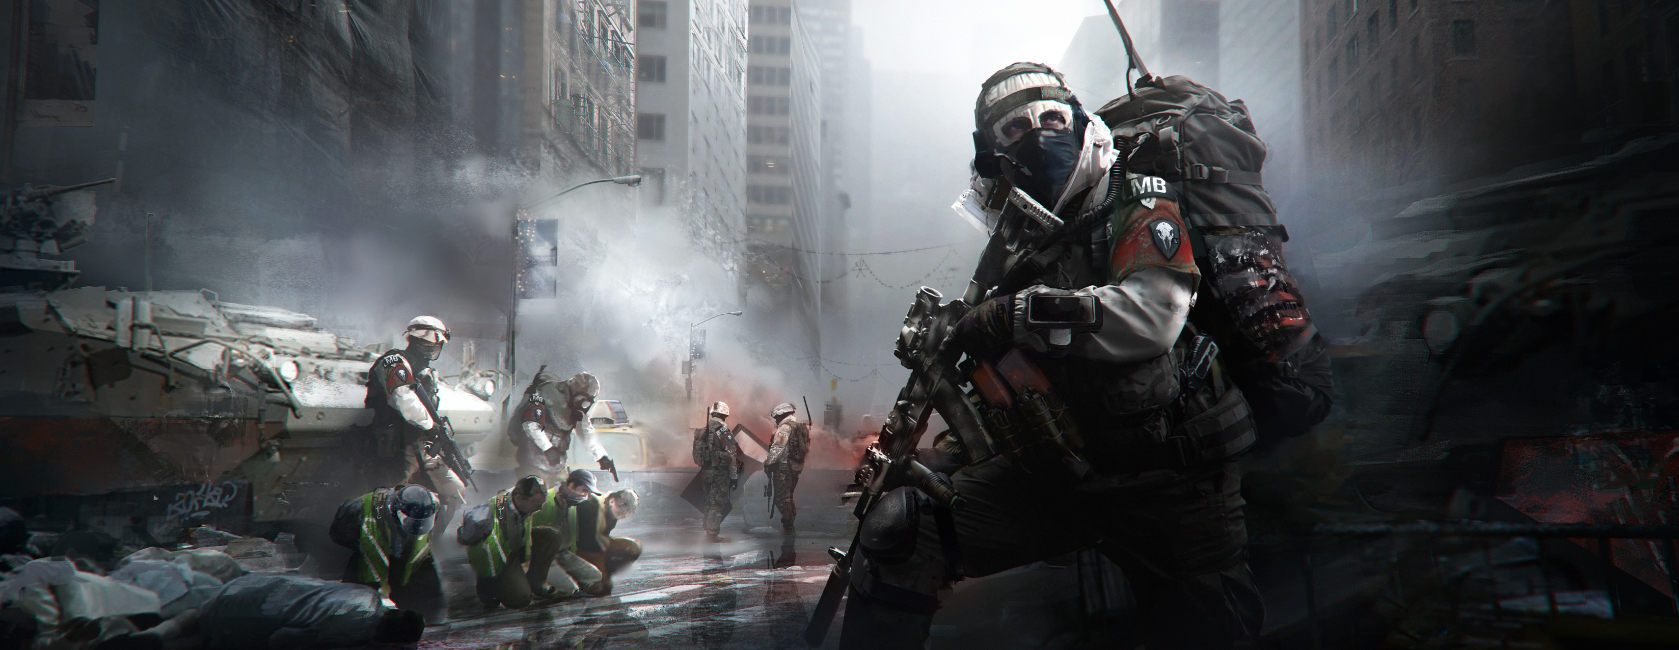 Ubisoft annuncia la Open Beta di Tom Clancy's The Division